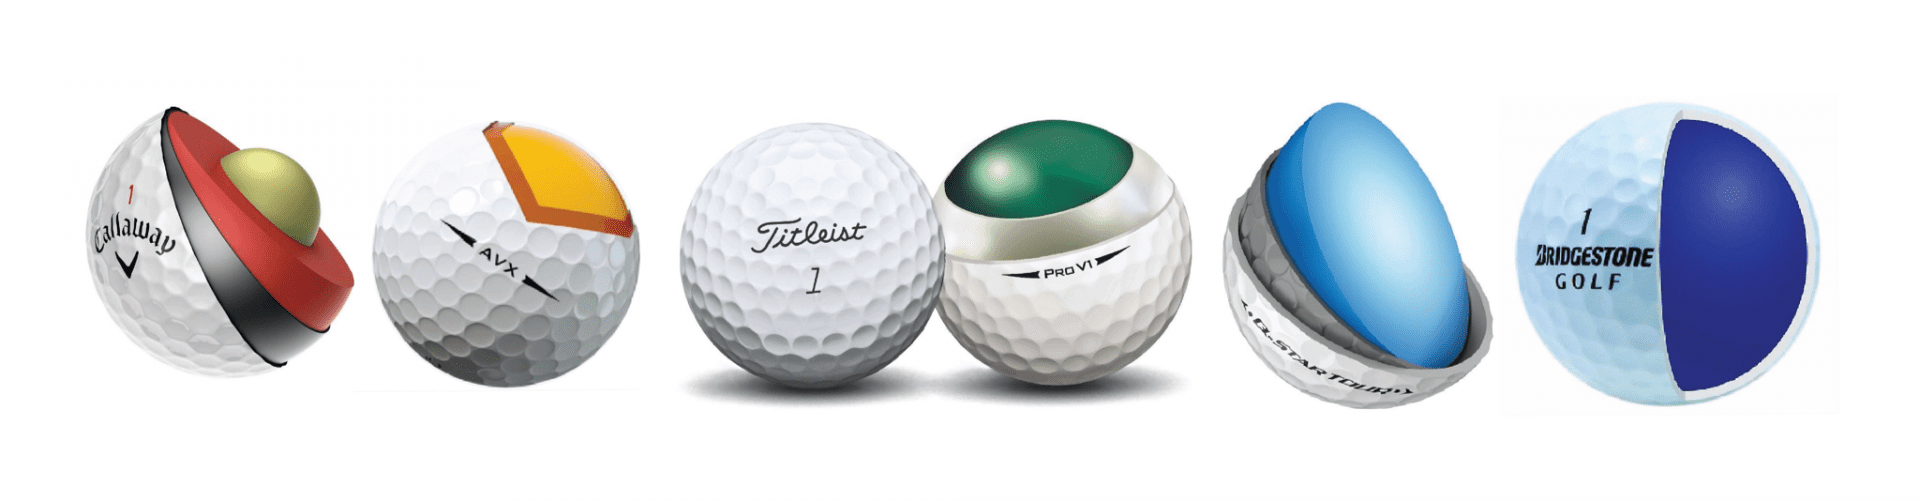 ball fitting, golf balls